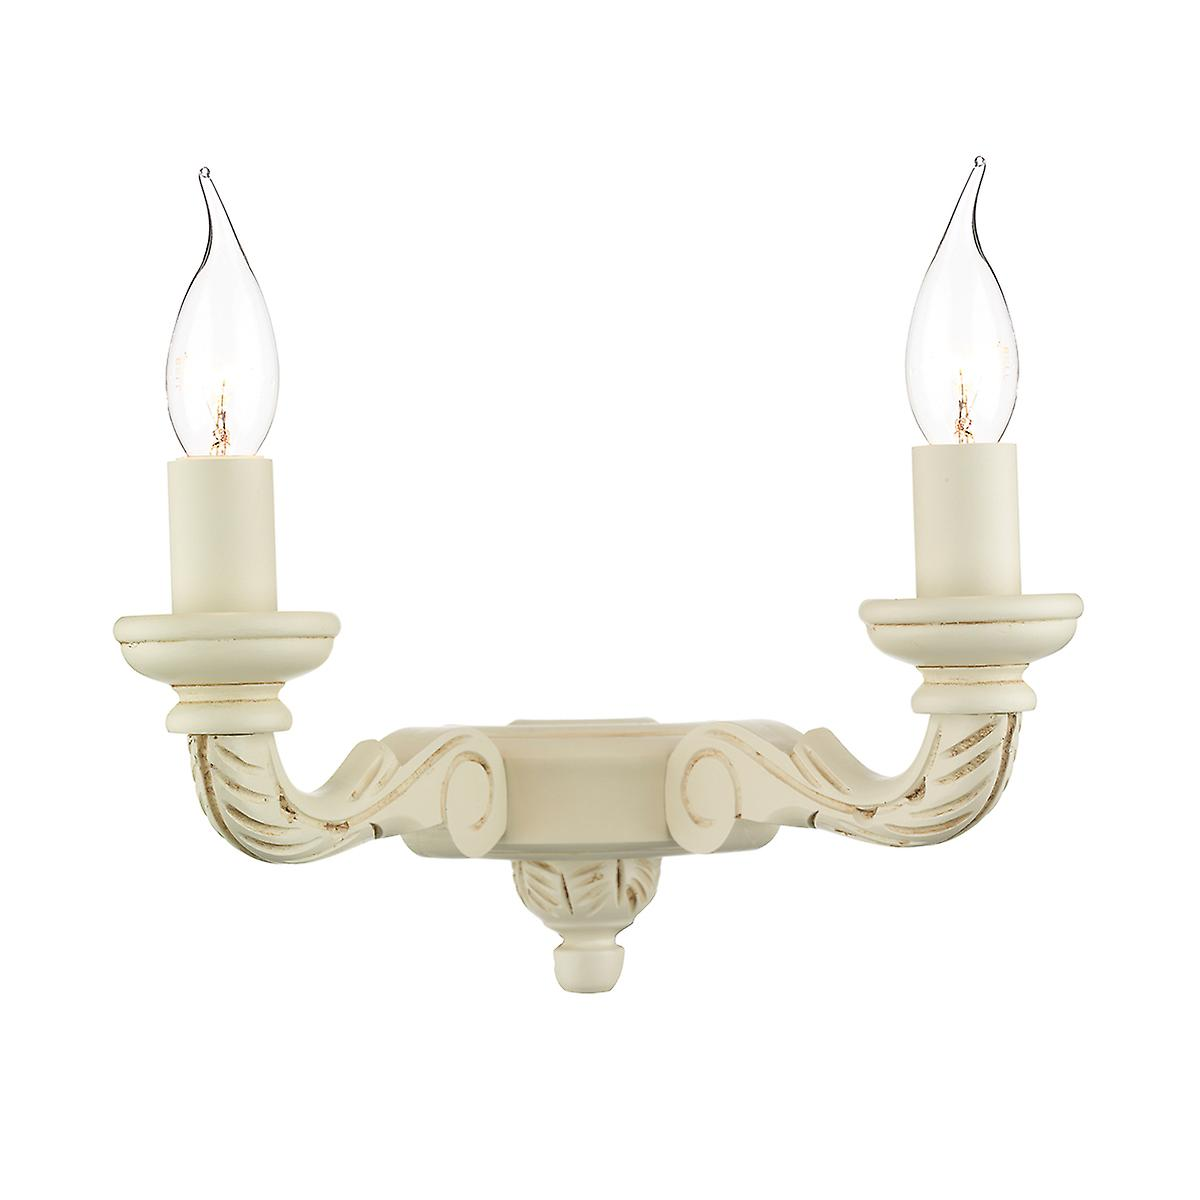 David Hunt TUD0933 Tudor Double Wall Bracket With A Cream Finish